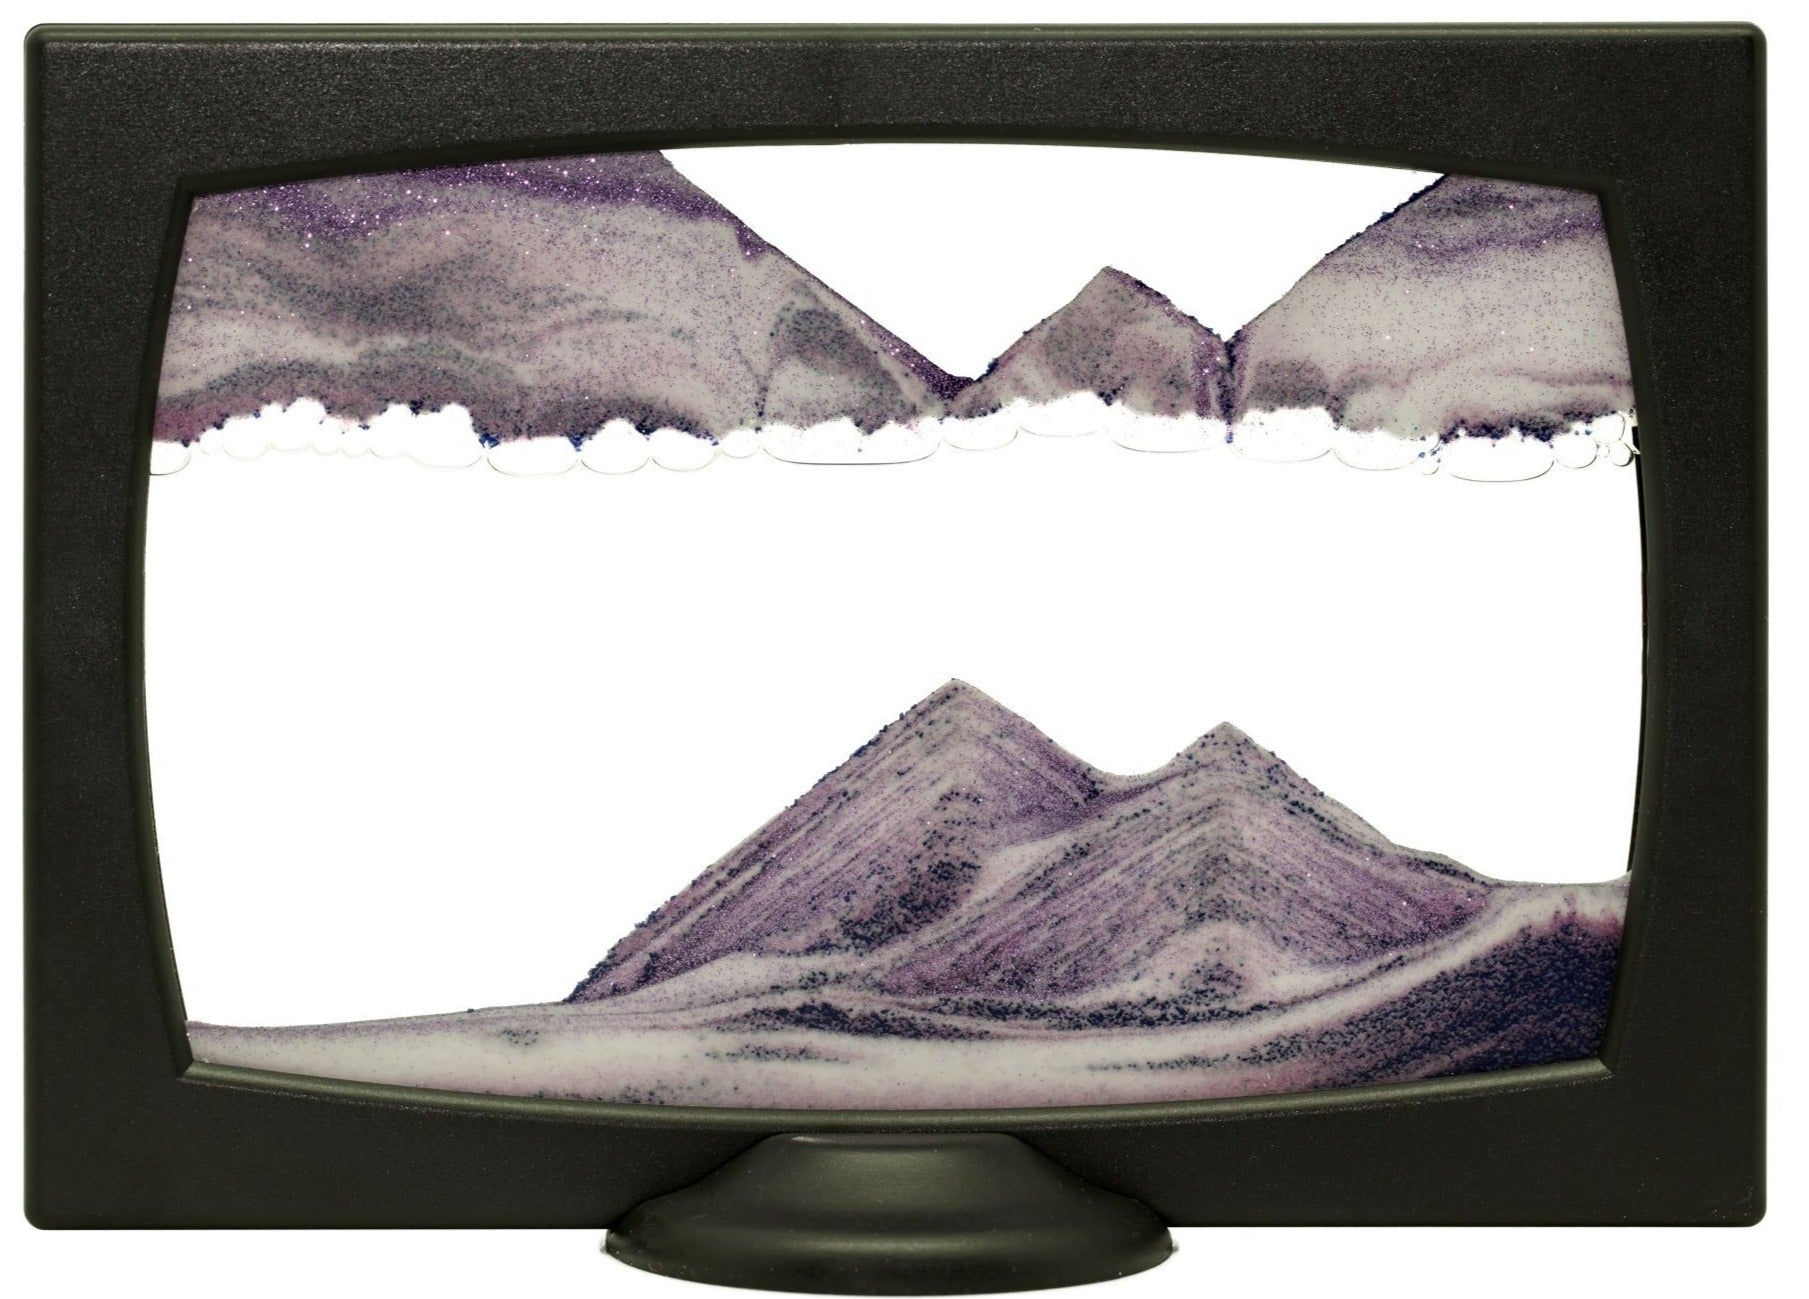 Picture of KB Collection Screenie Purple Char Sand Art - By Klaus Bosch sold by MovingSandArt.com